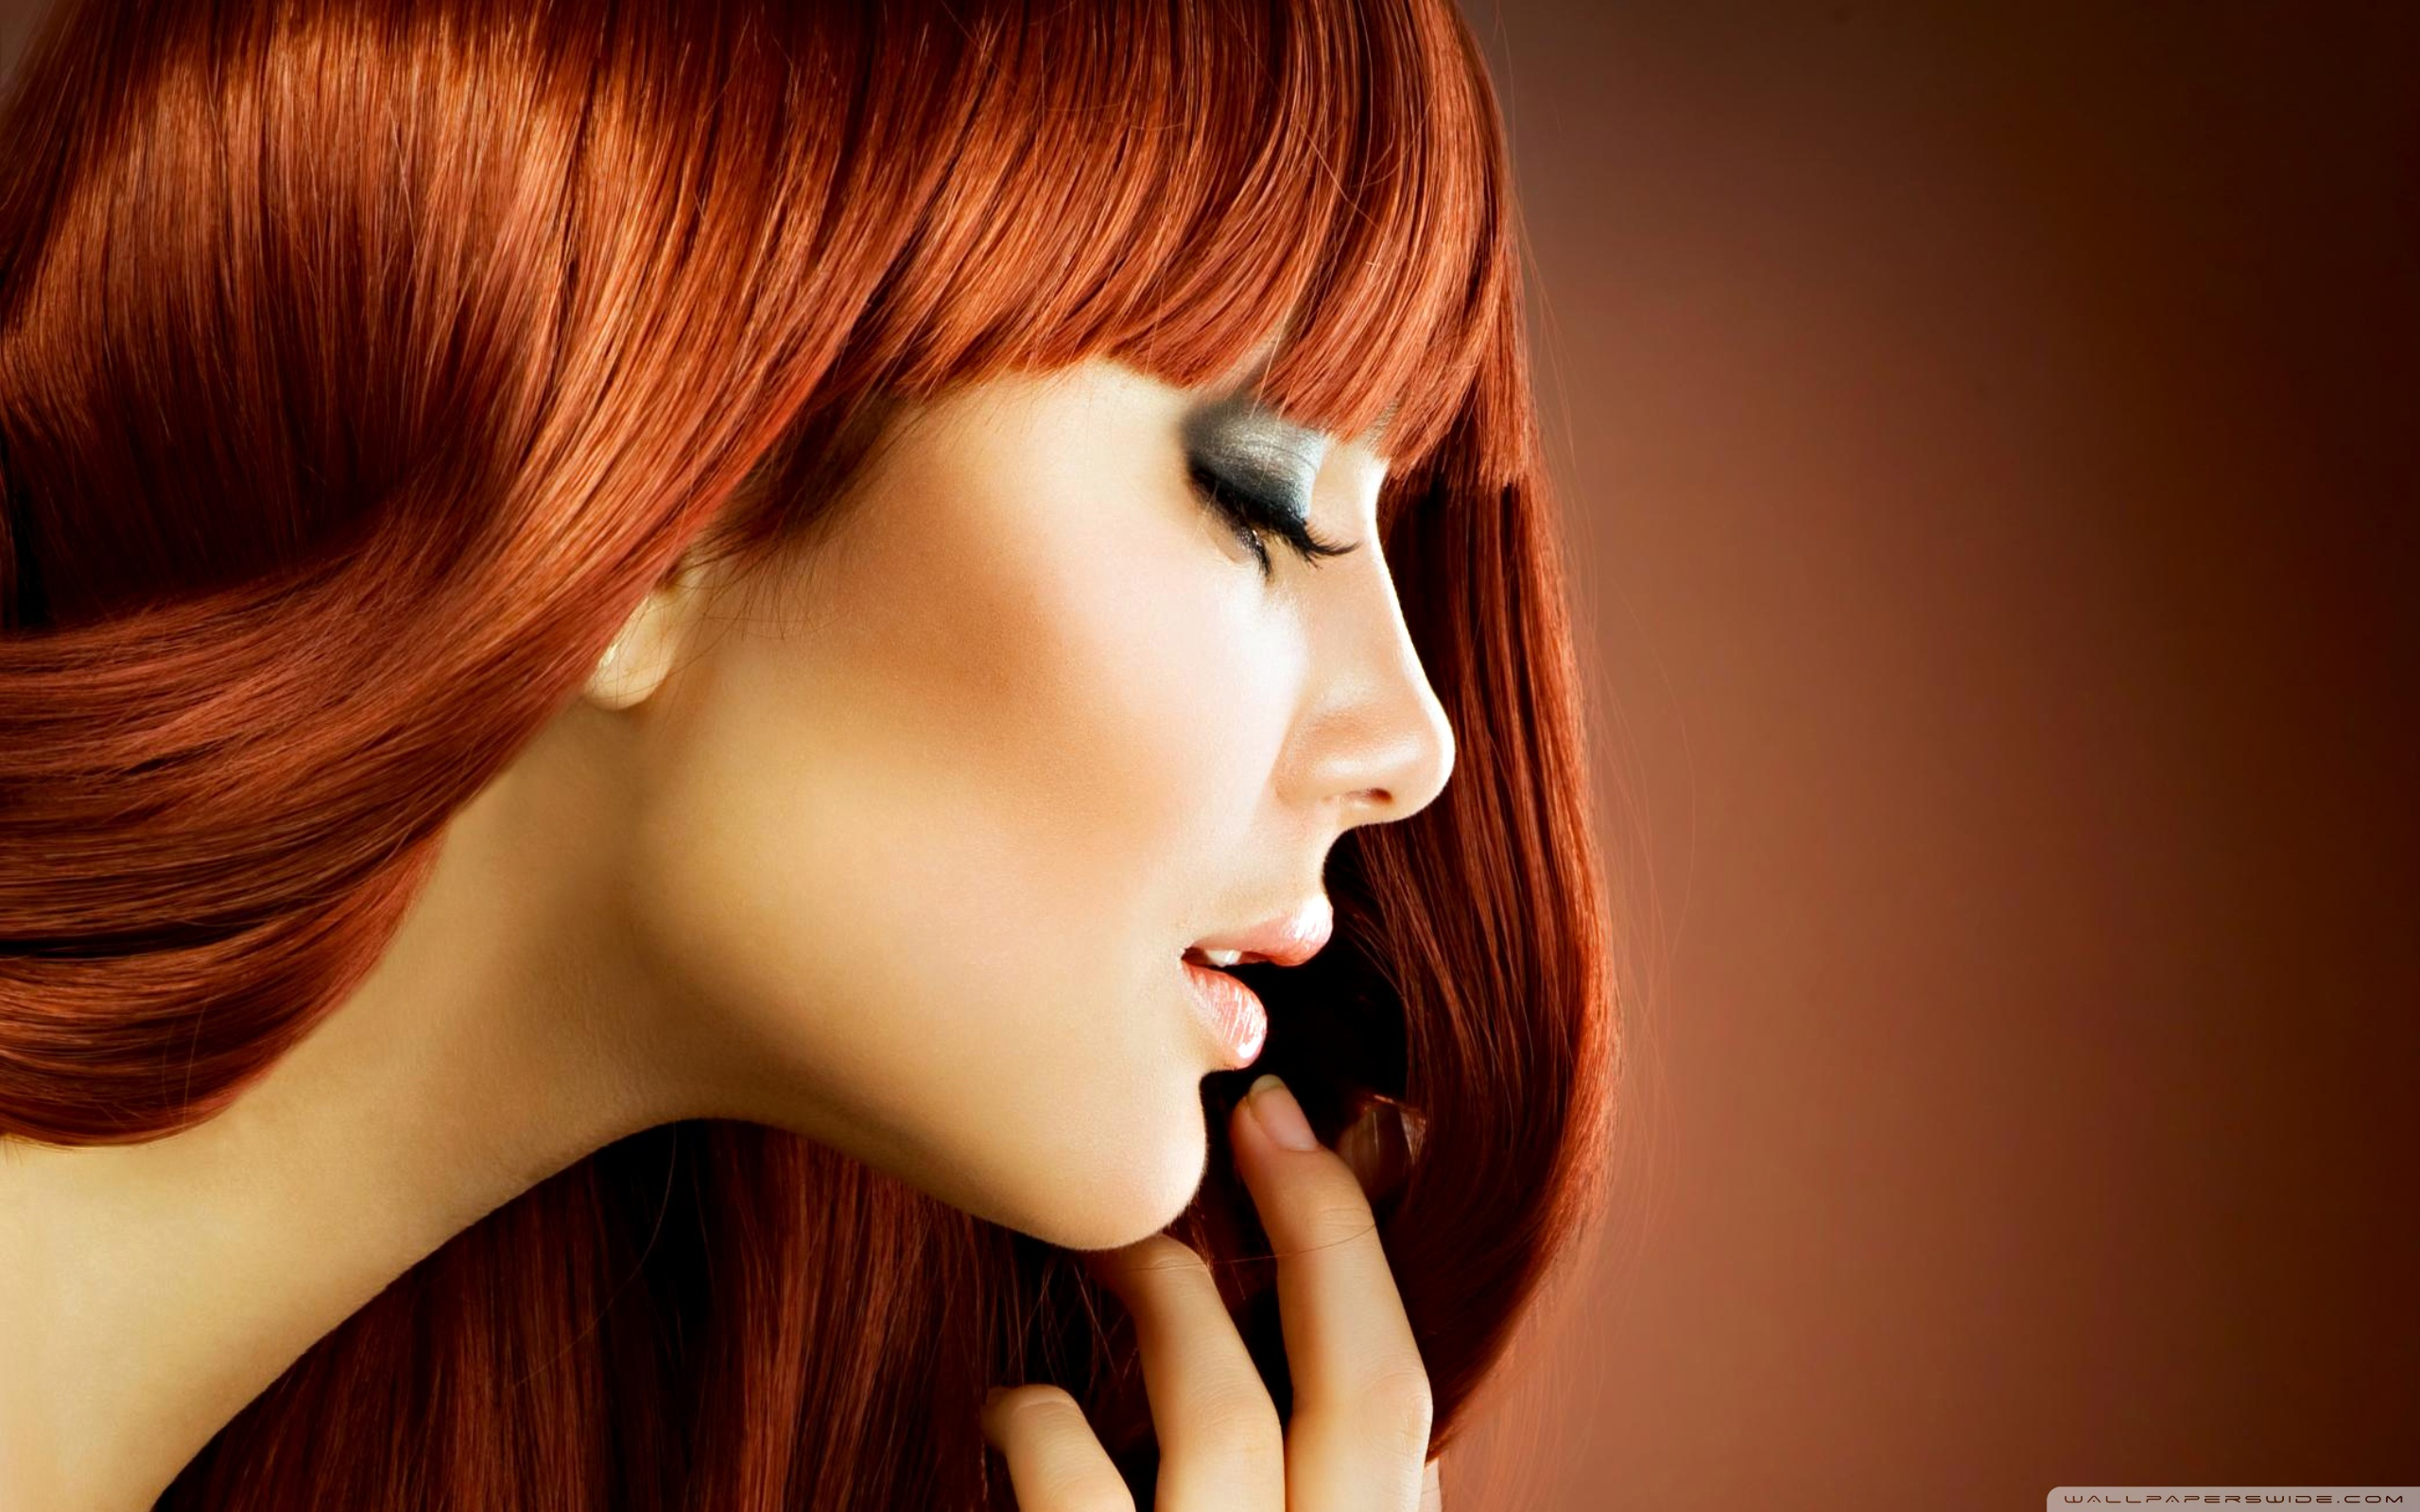 Salon Hair Hair Salon Ingleburn Rsl